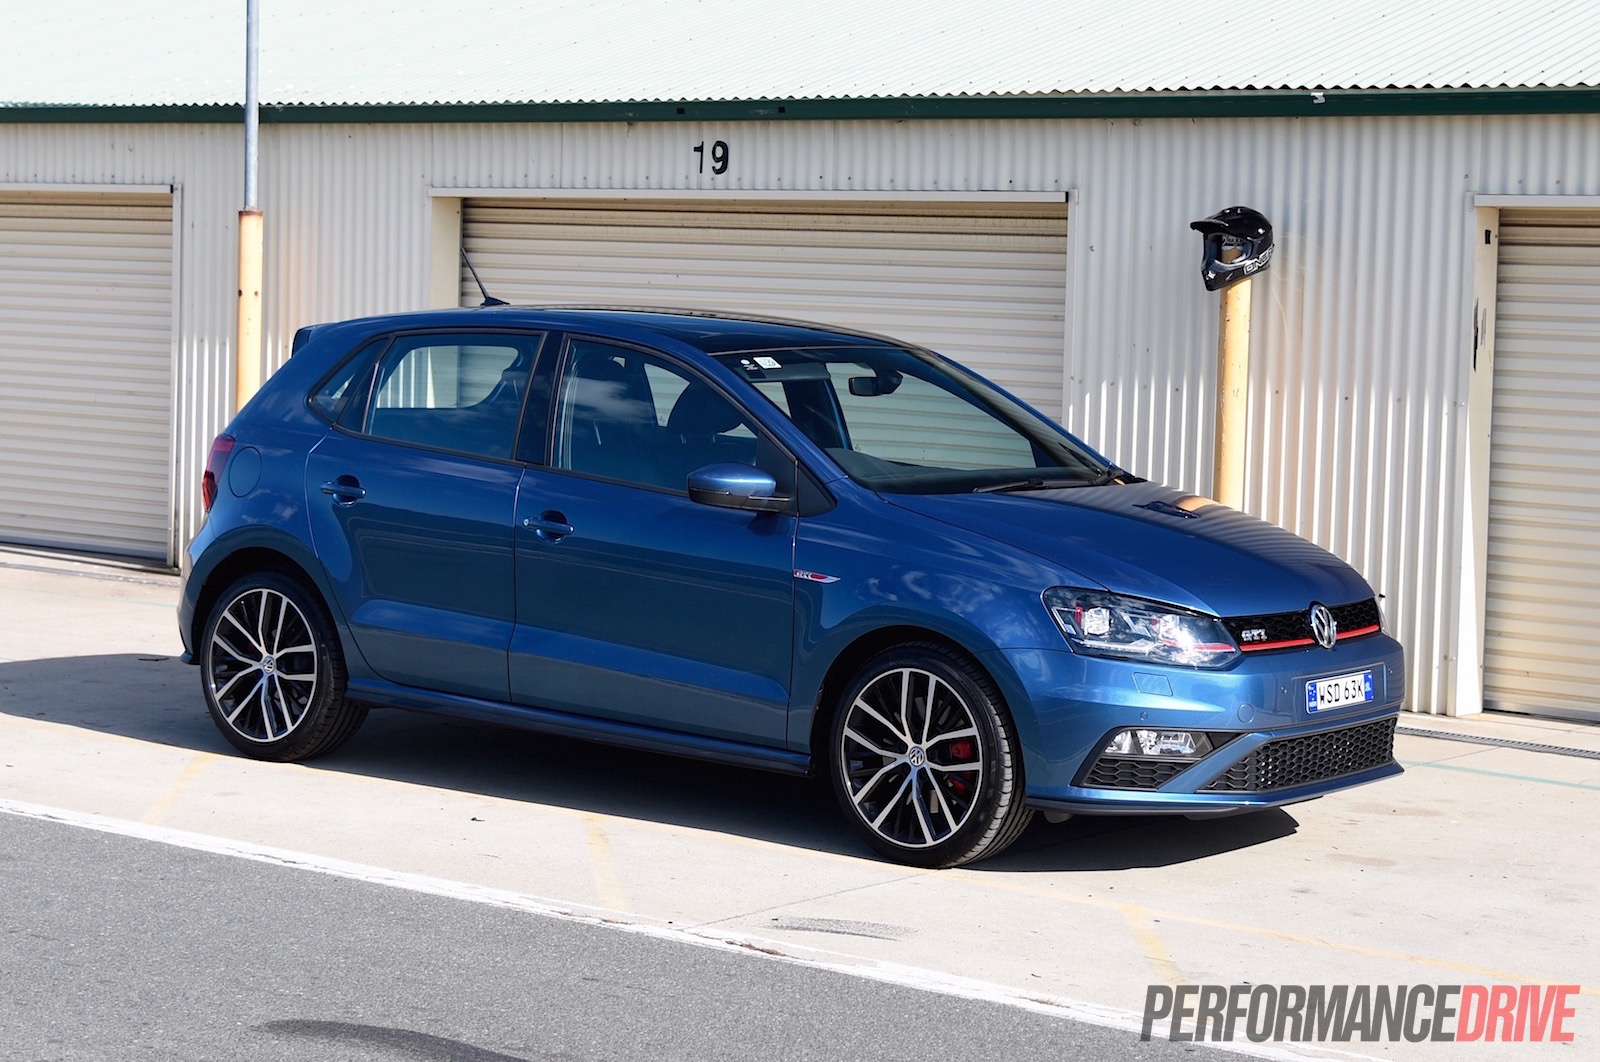 2015 Volkswagen Polo Gti Review Track Test Video Performancedrive